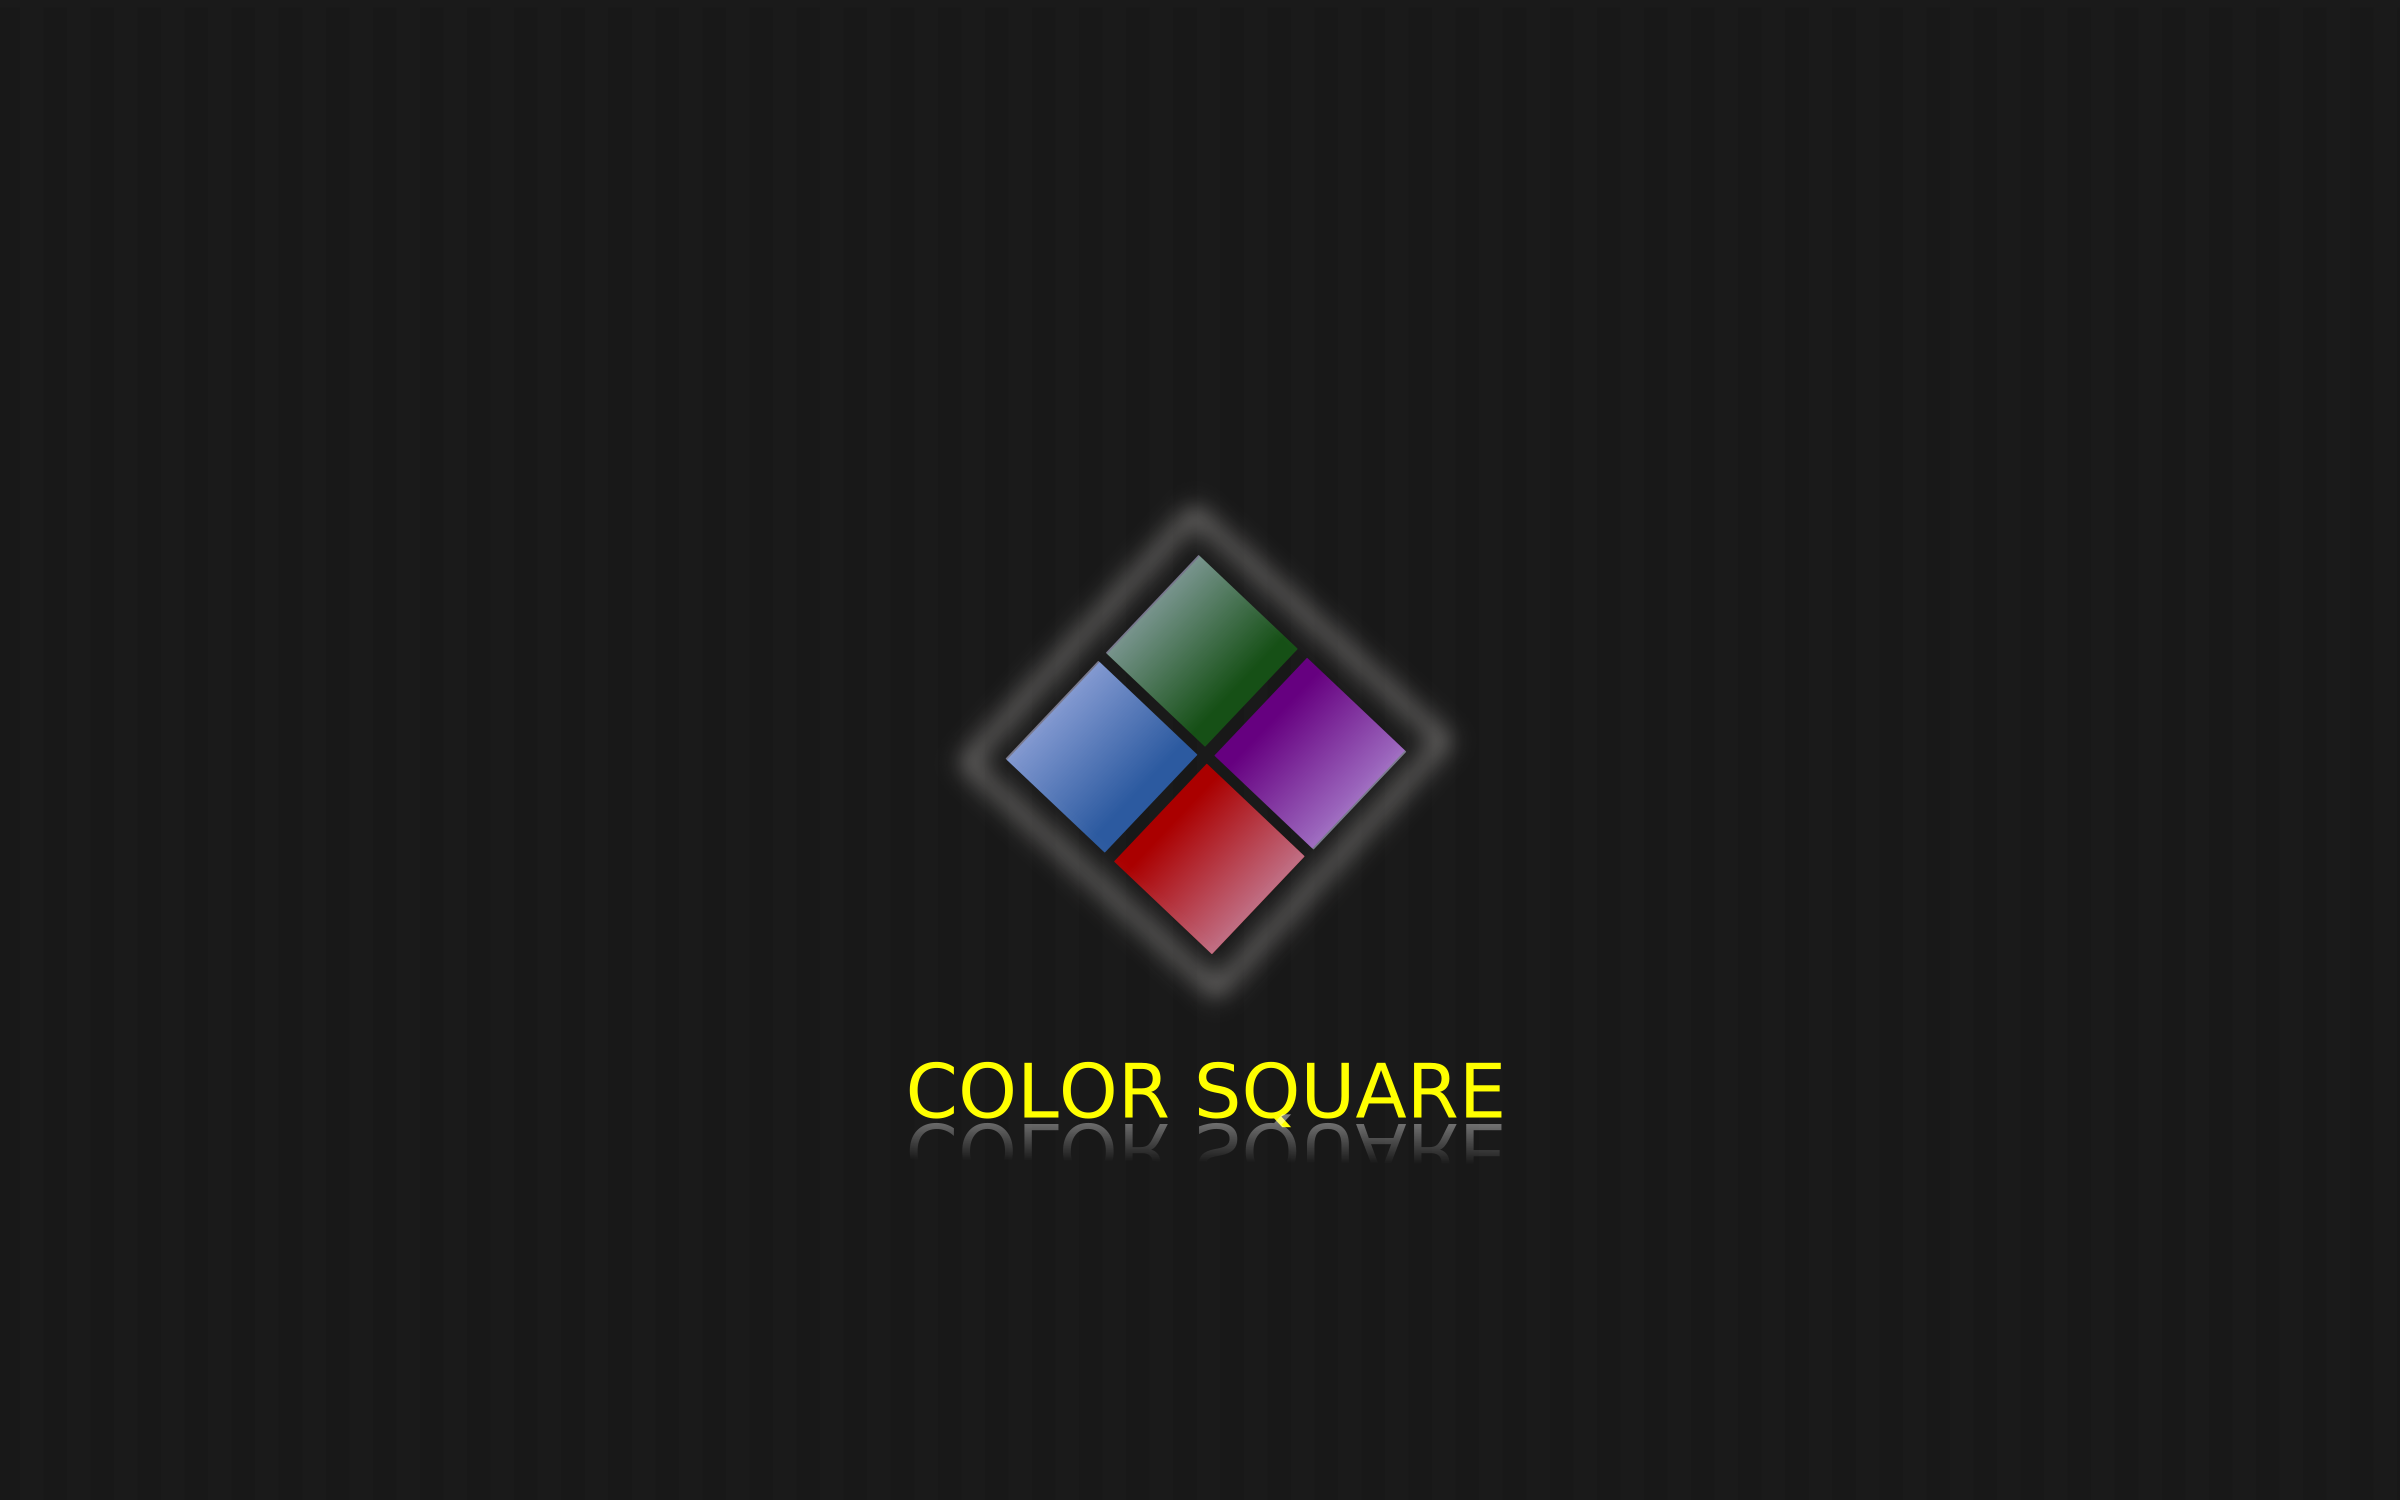 Color square Wallpaper by gsagri04